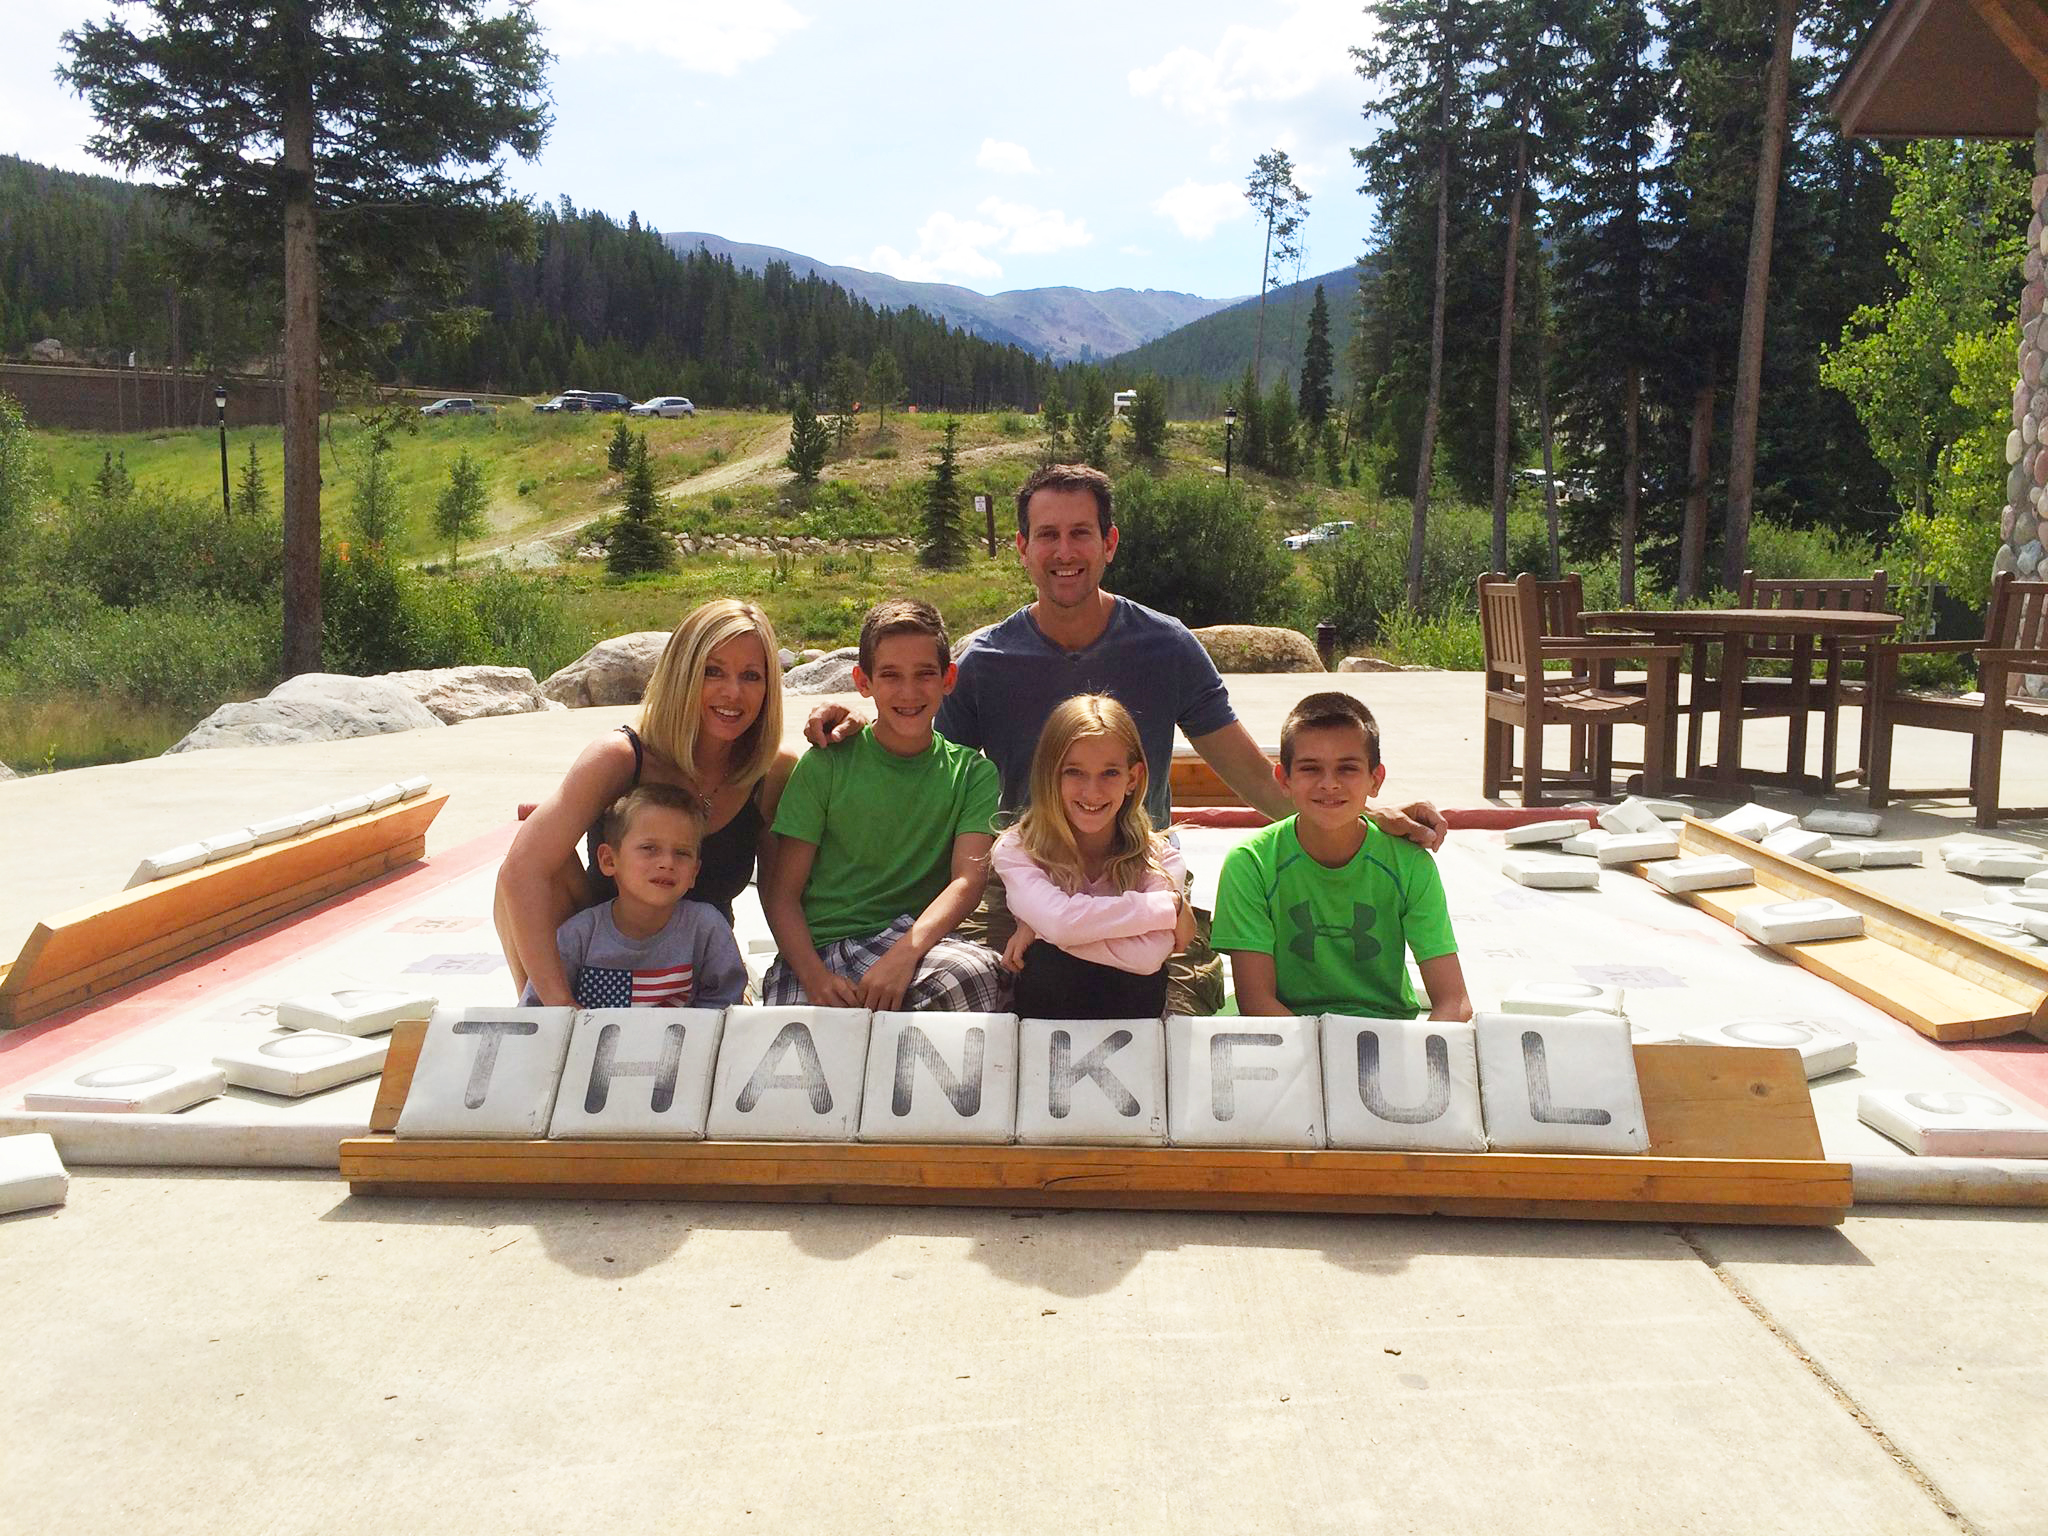 Alex and his family at the Grand County Adventure Program